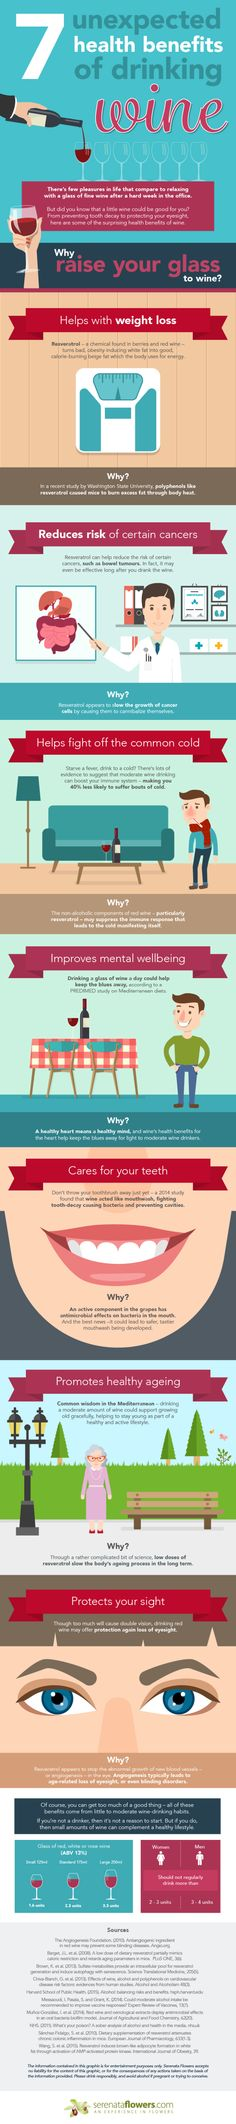 Drinking Wine: 7 Unexpected Health Benefits [by Serenata Flowers -- via #tipsographic]. More at tipsographic.com